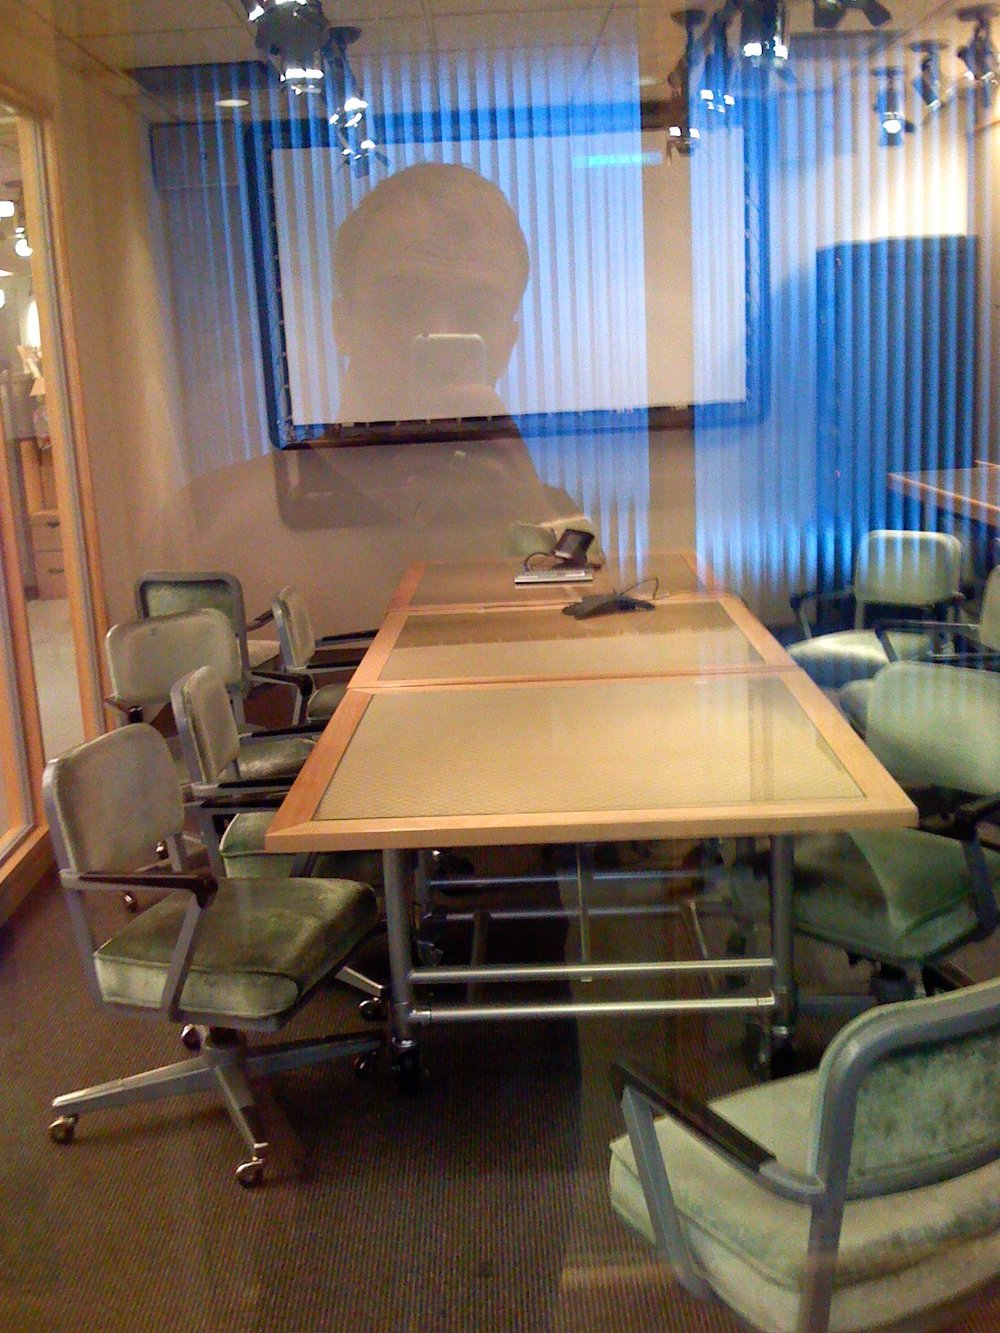 Workspace at the agency. Headed to work. Shot on iPhone, Aug 3, 2007